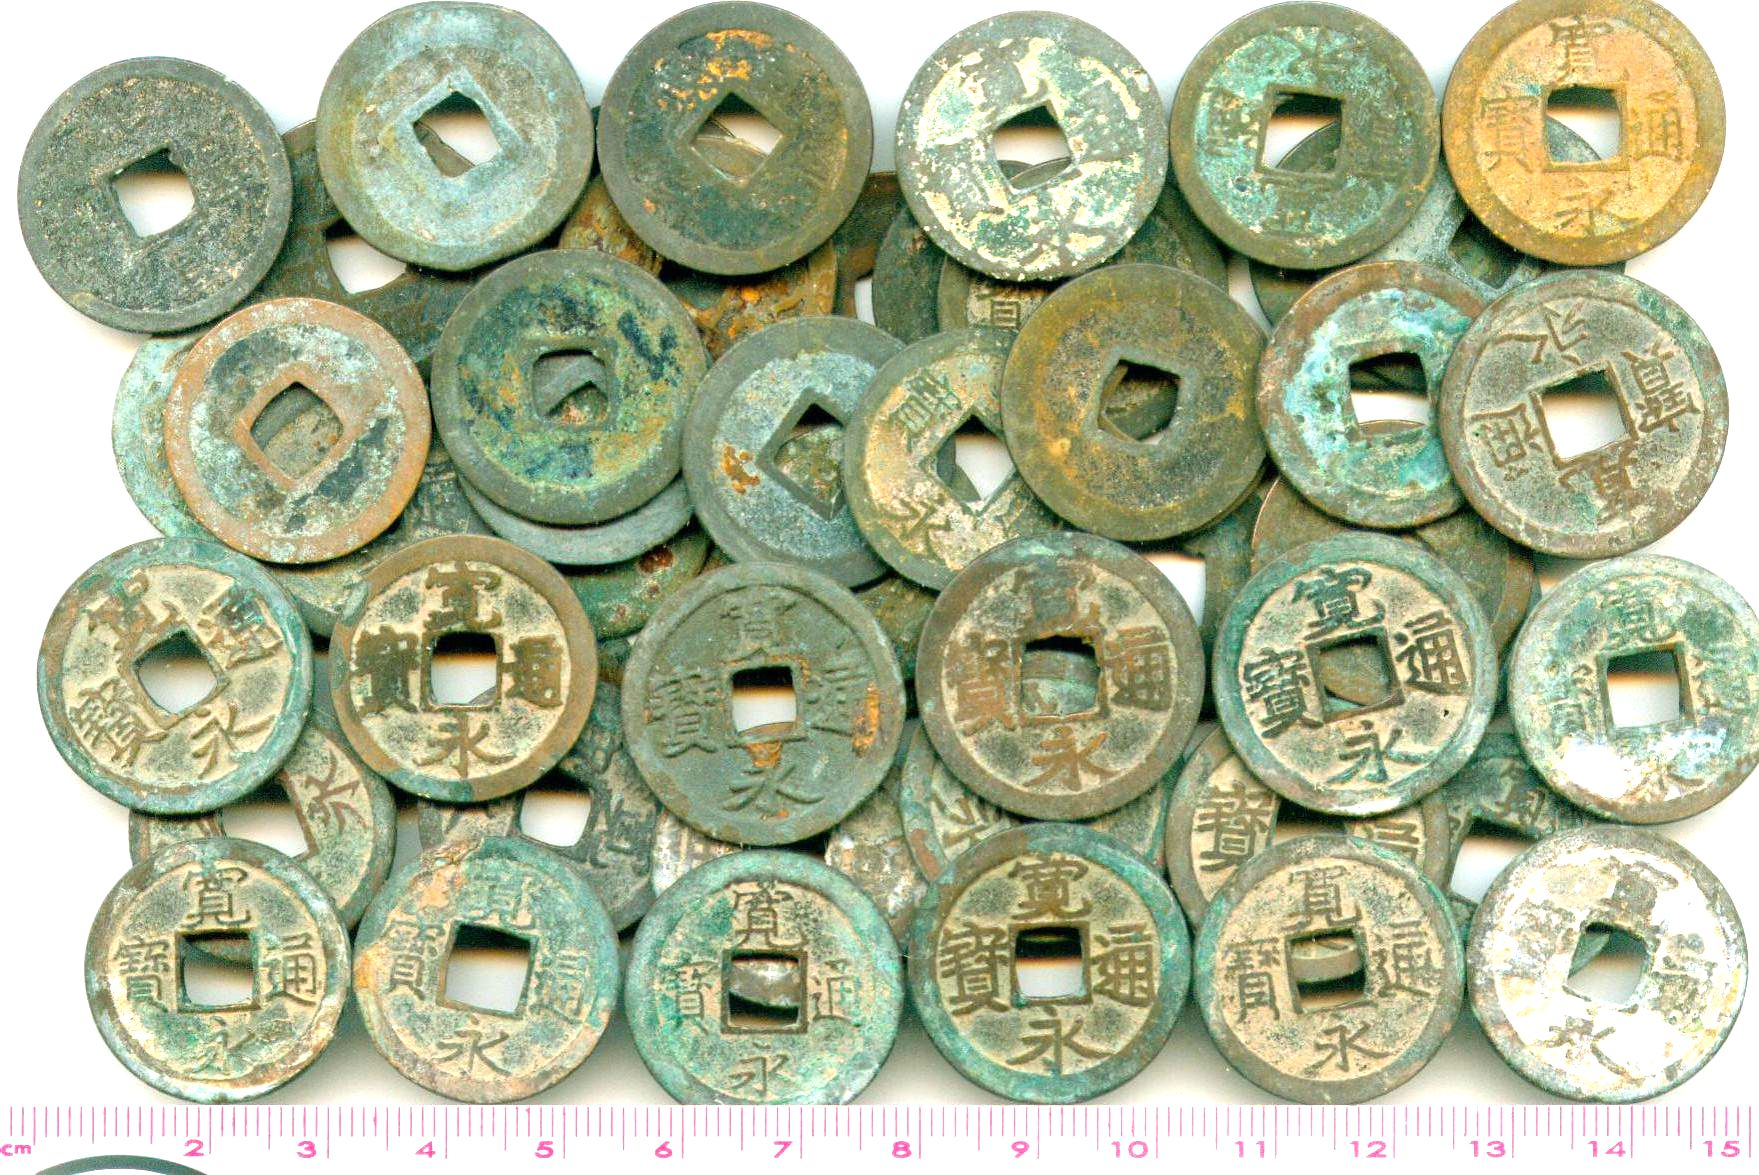 L7032, Japan 20 Pcs Kanei Tsuho Coins Wholesale, 1 Mon 1700's